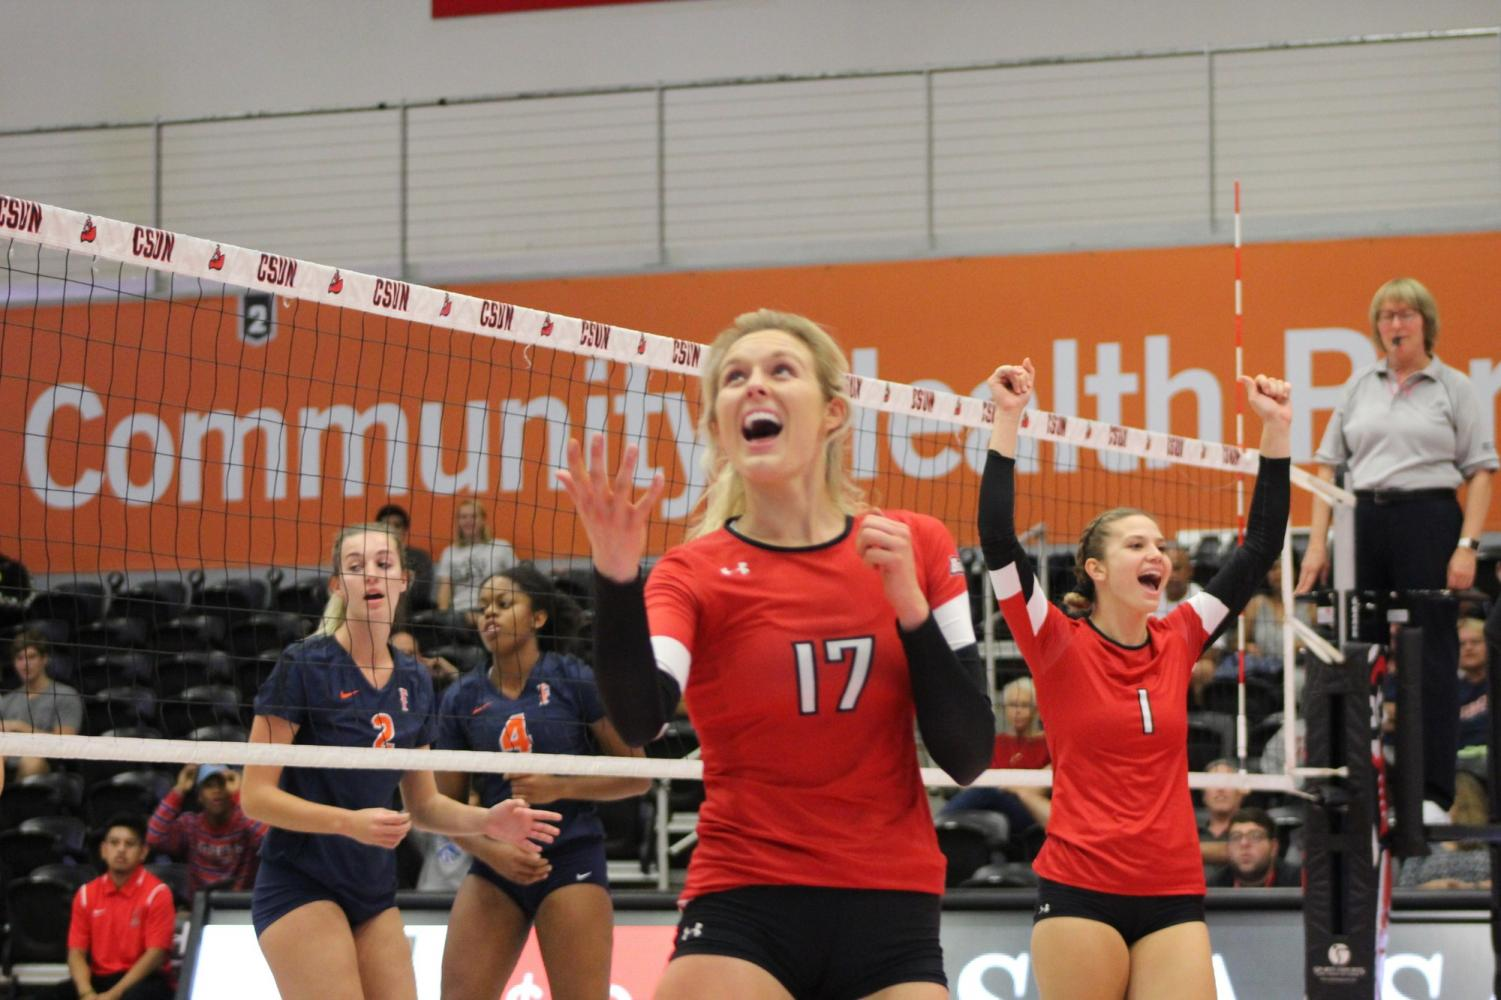 CSUN women's volleyball teammates Lexi McLeod (17) and Taylor Orshoff (1) celebrate a winning shot against Cal State Fullerton on Oct. 20. Photo credit: Charity Wang